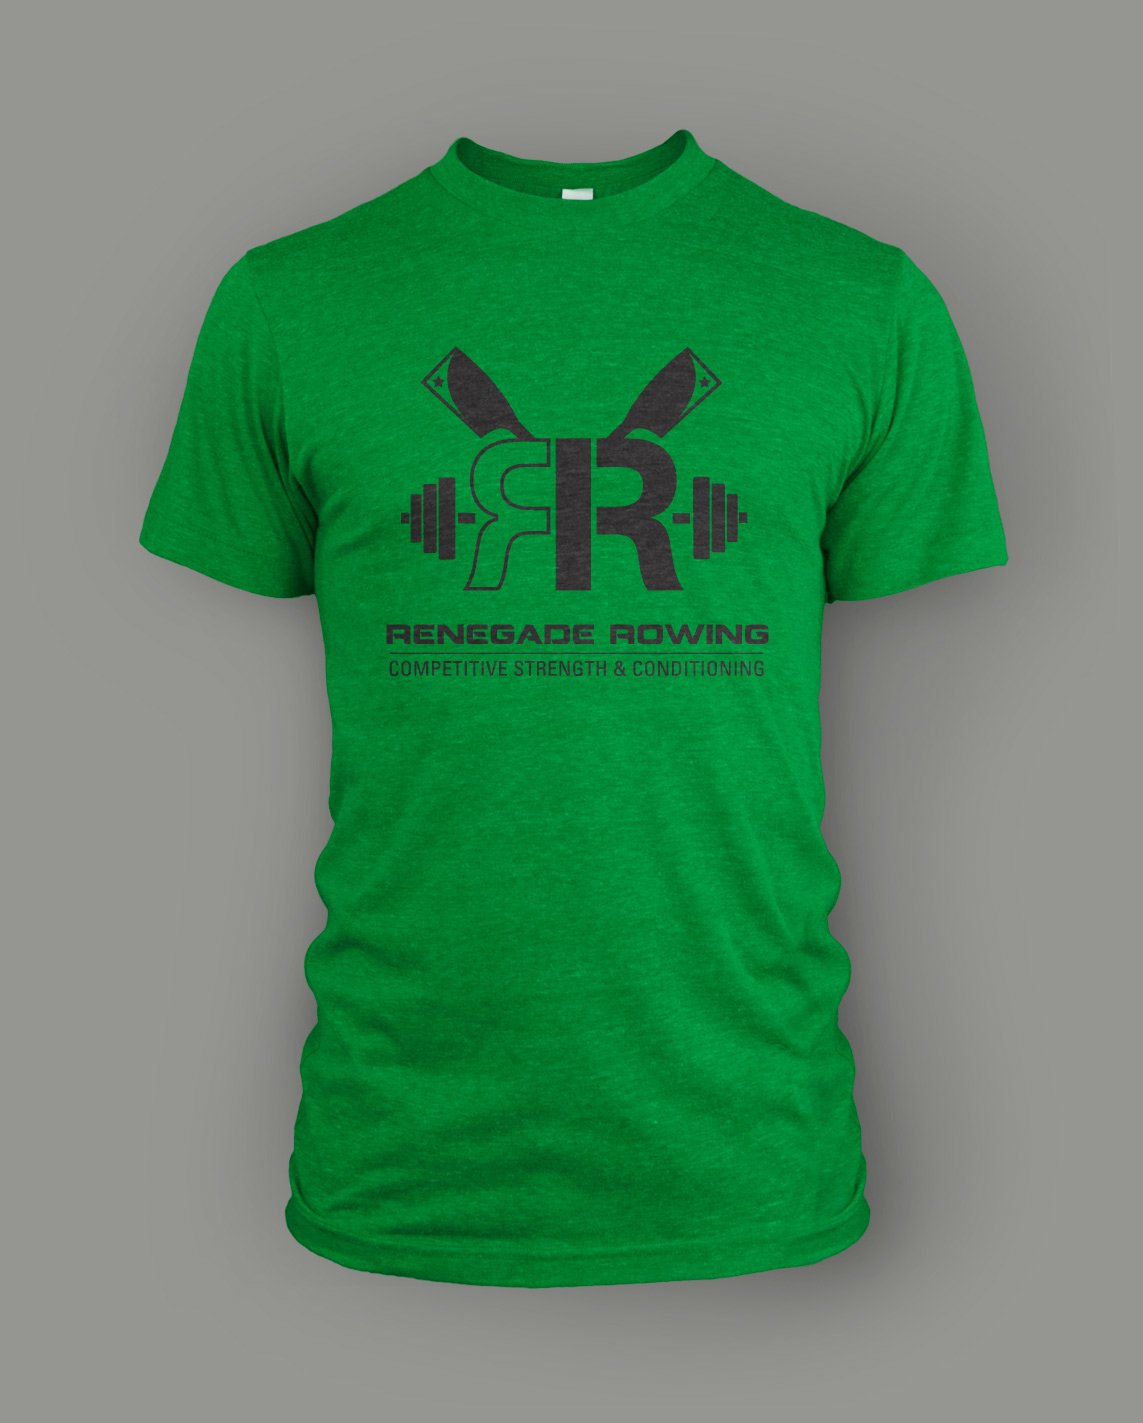 renegade rowing screen printed triblend t-shirt